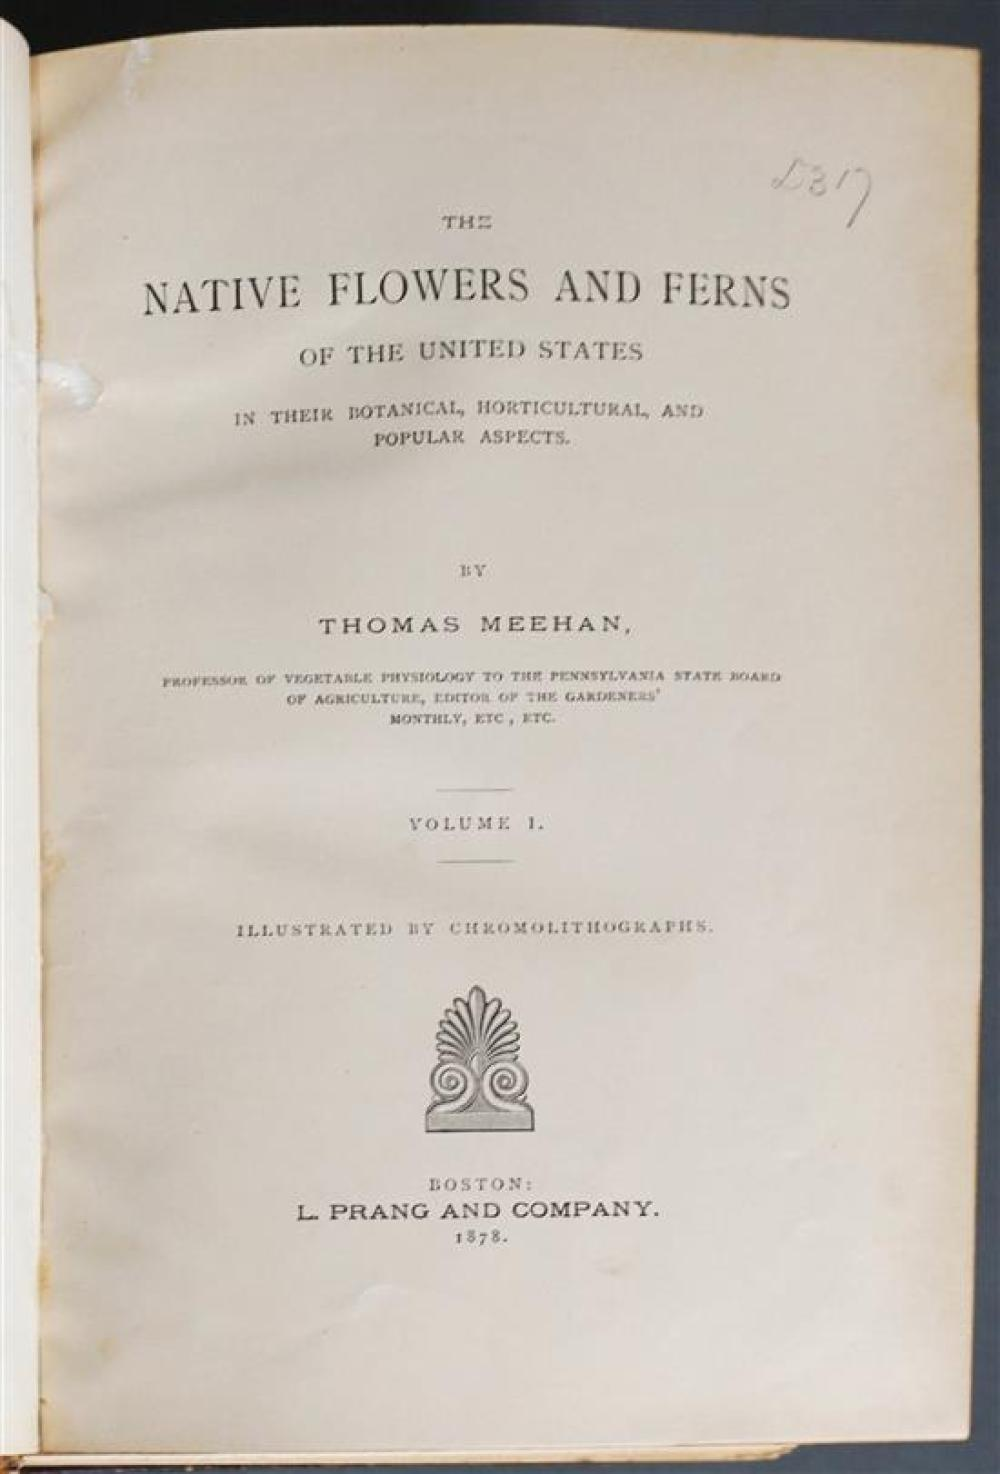 Thomas Meeshan, The Native Flowers and Ferns of the United States, Published by L. Prang & Co. 1878, Two Volumes